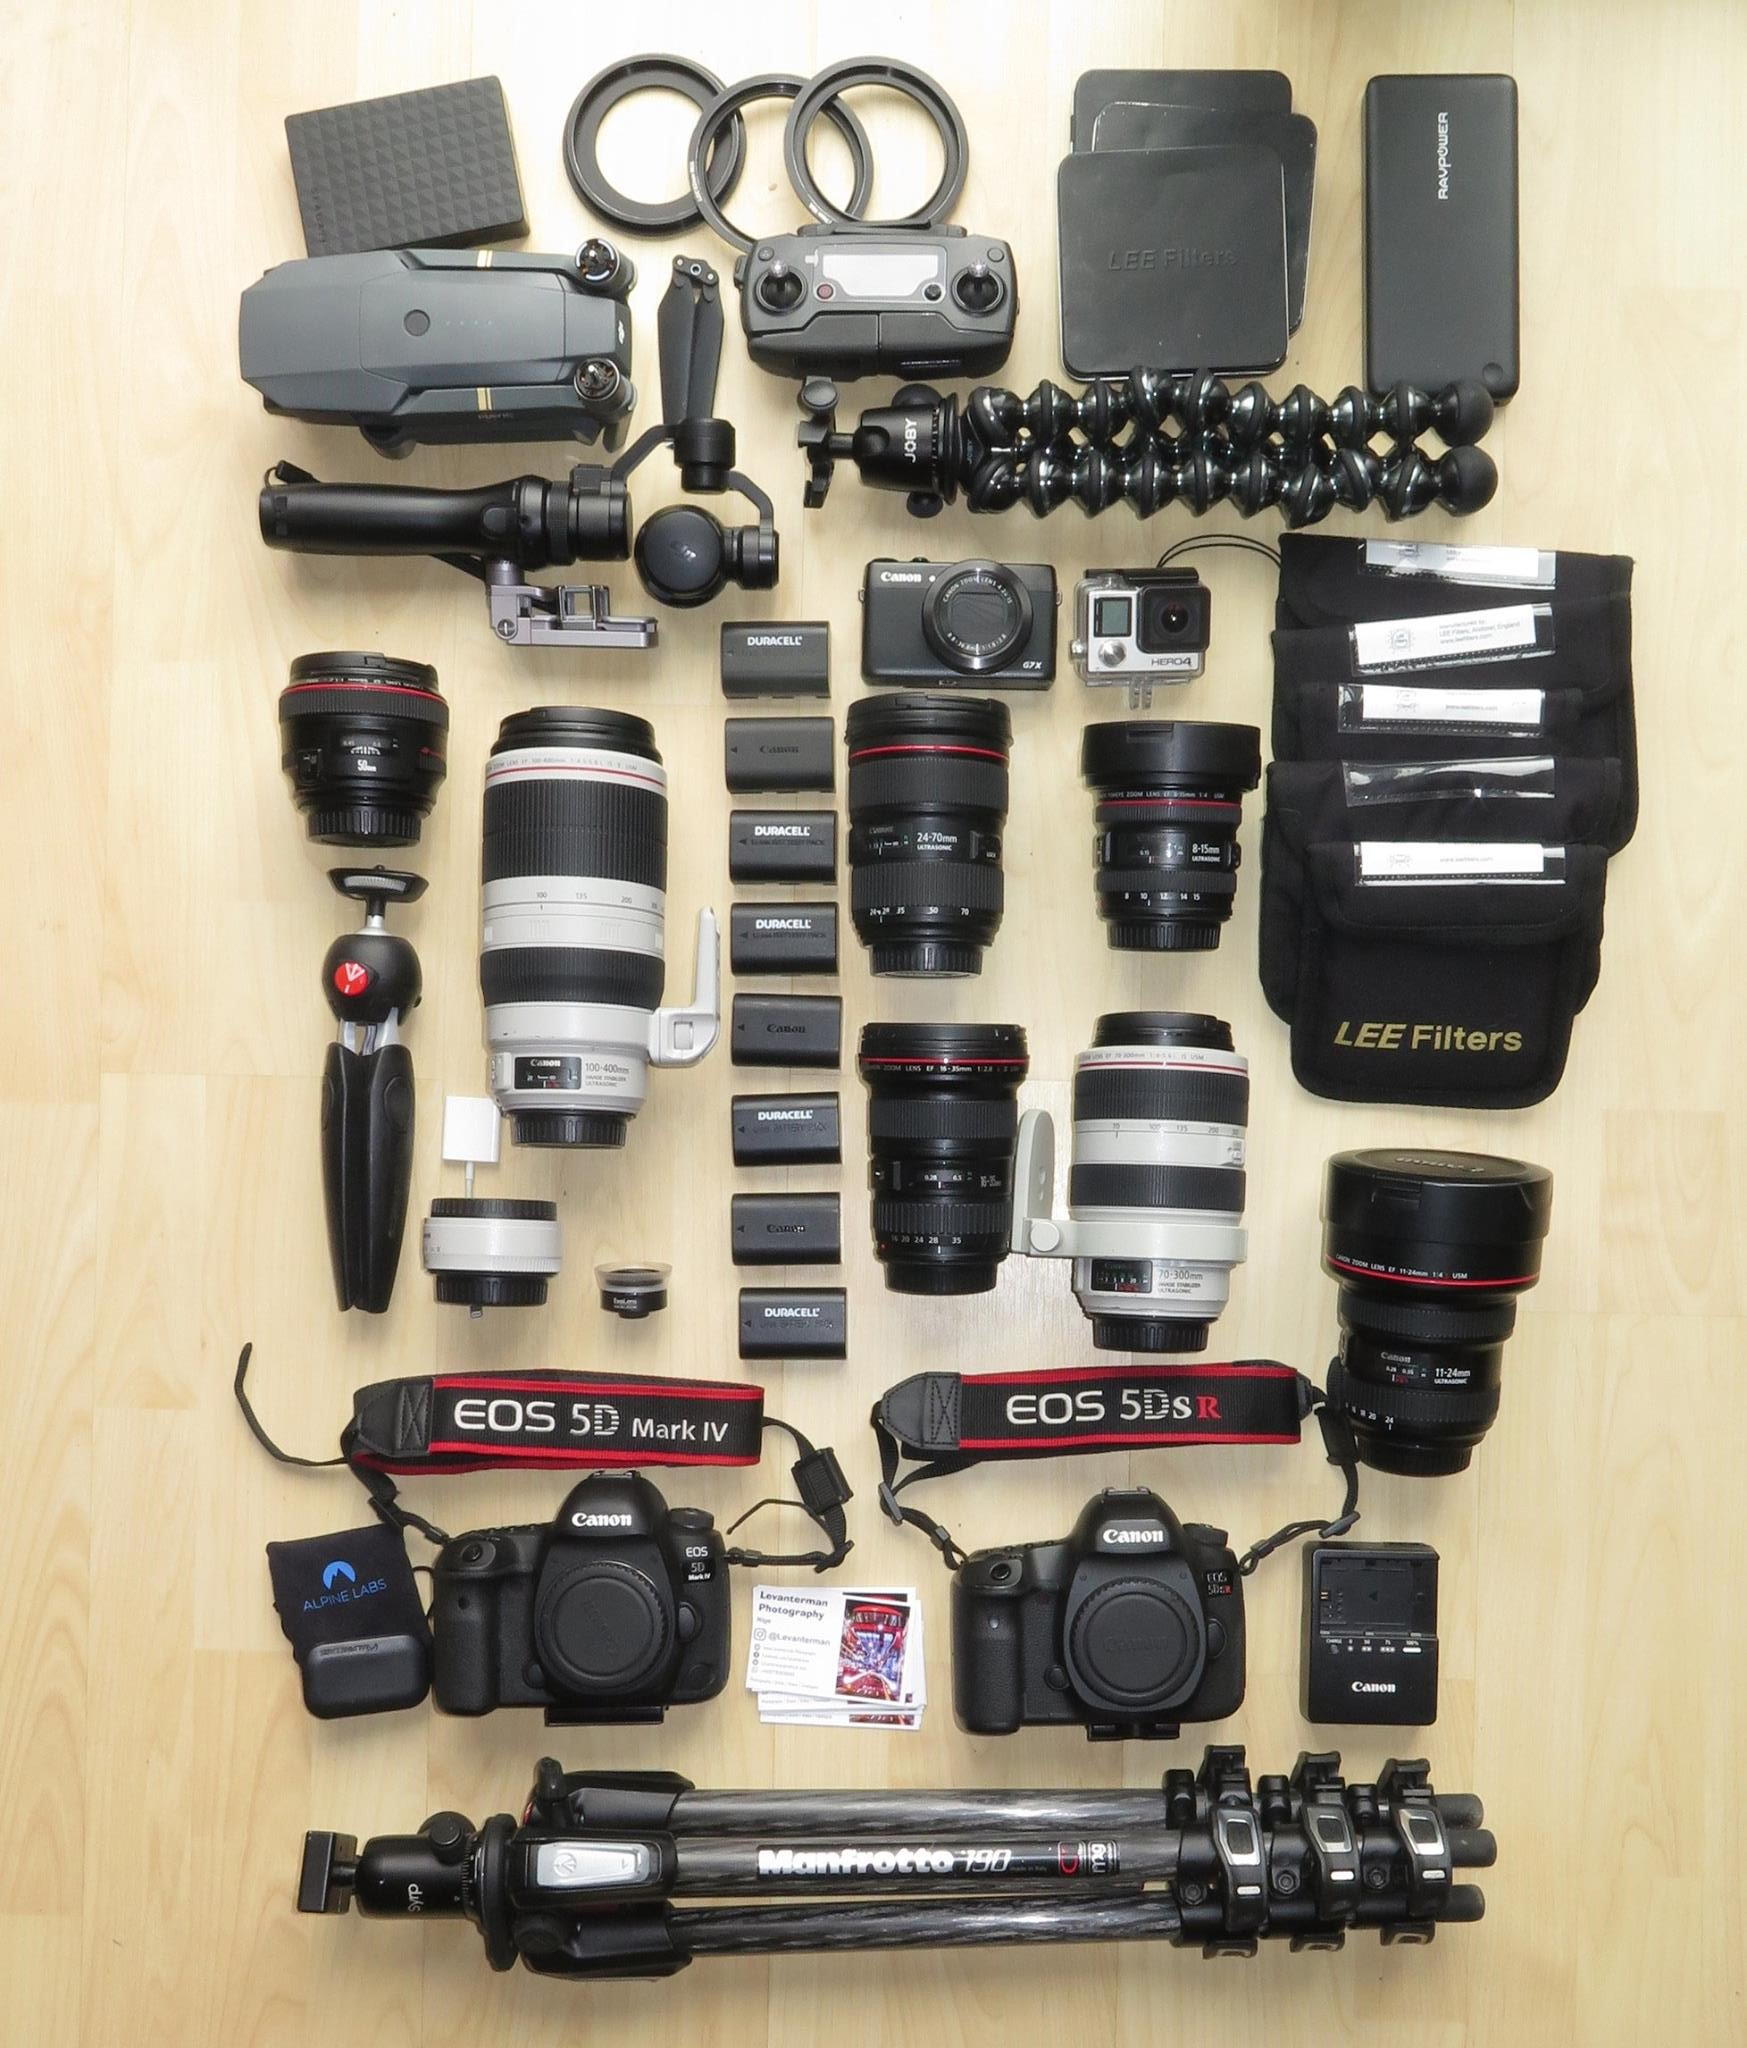 Now this is what we call a kit bag and a half! (Image © @Levanterman) https://t.co/GpVnf104xj